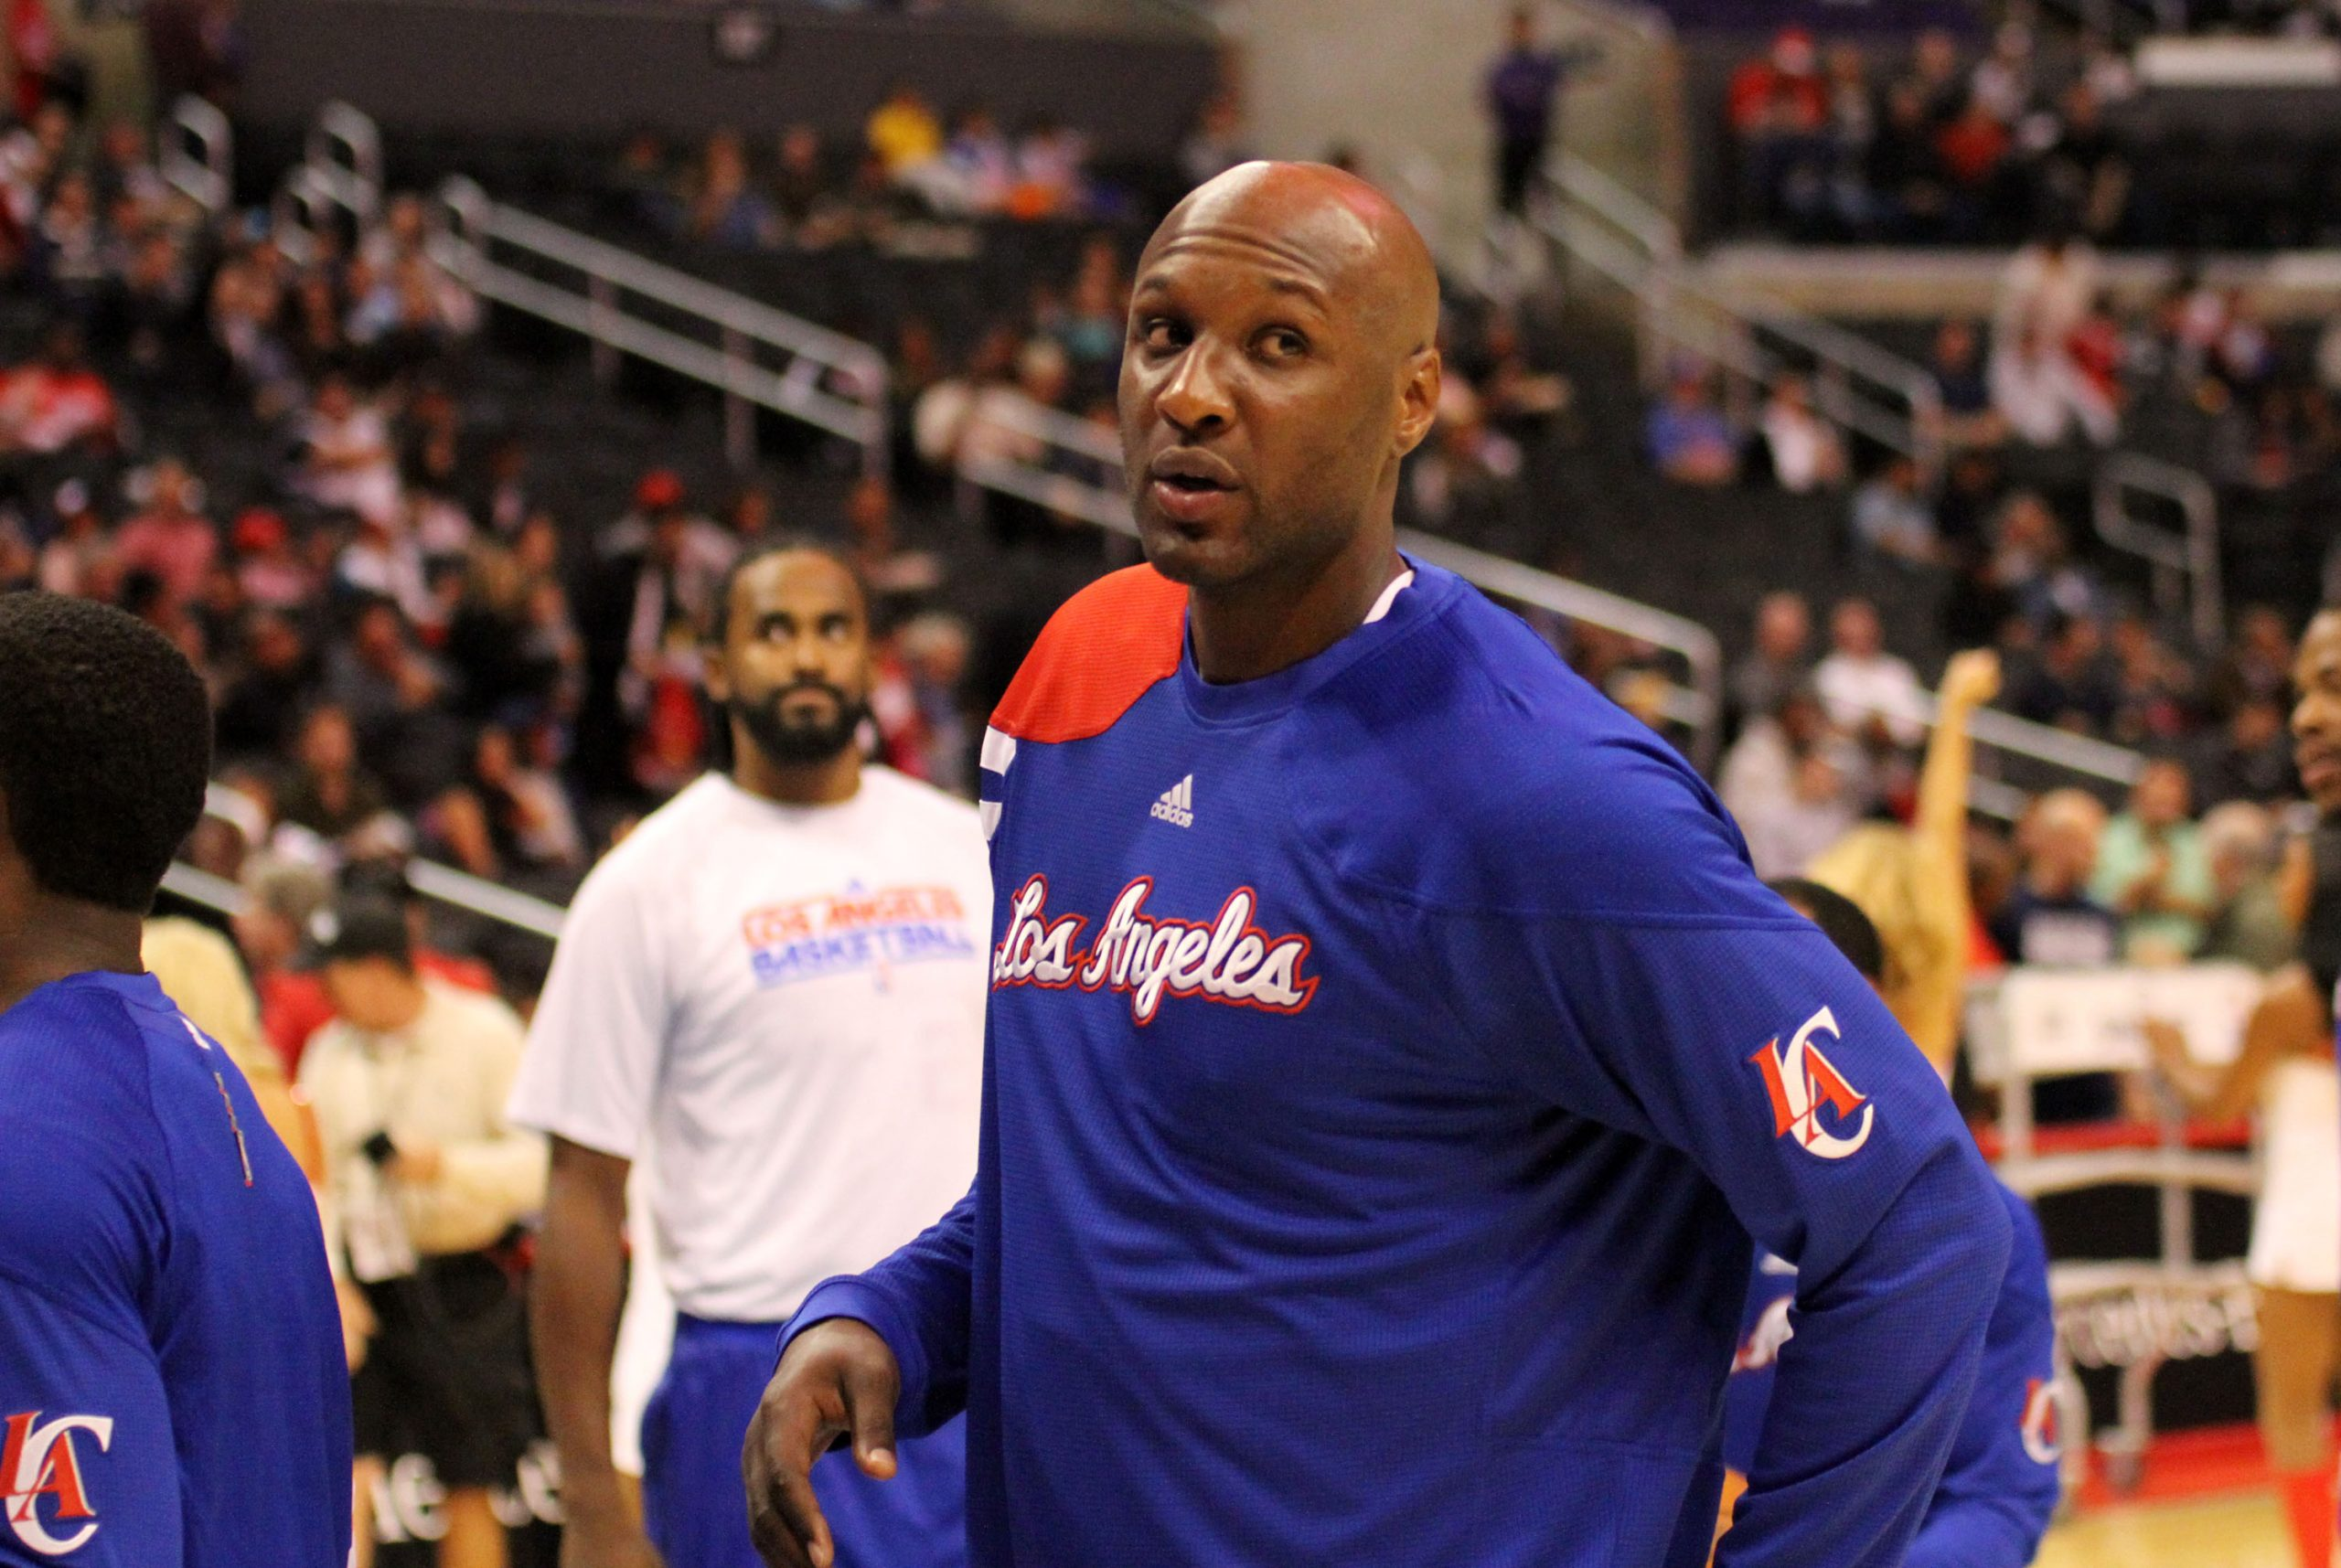 Lamar Odom is rounding back into the force that earned the NBA's Sixth Man Award. Photo Credit: Burt Harris/News4usonline.com